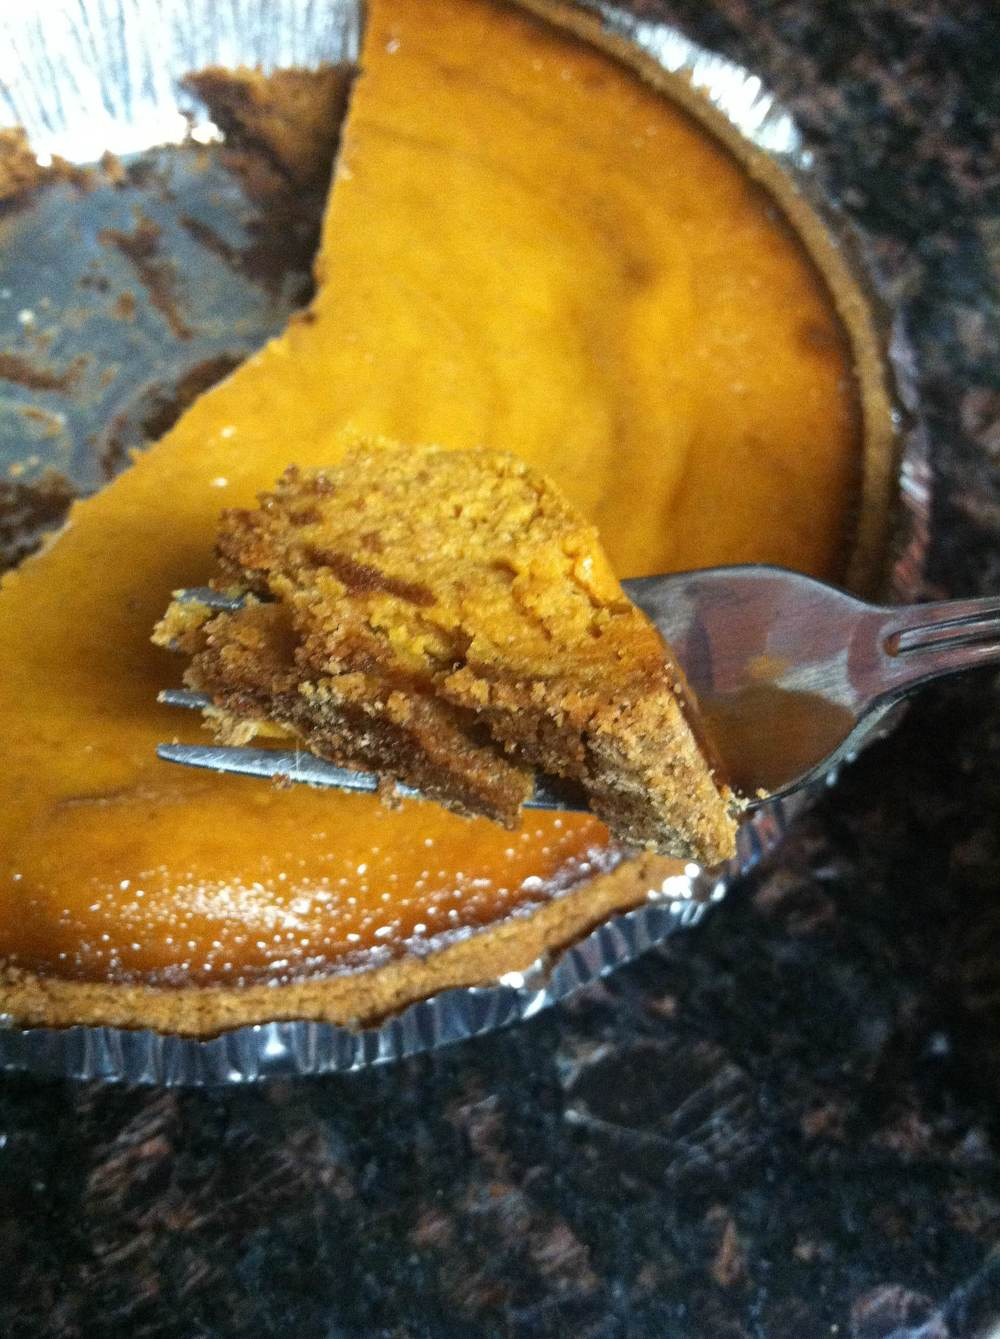 Who needs birthday cake when you have pumpkin pie instead?